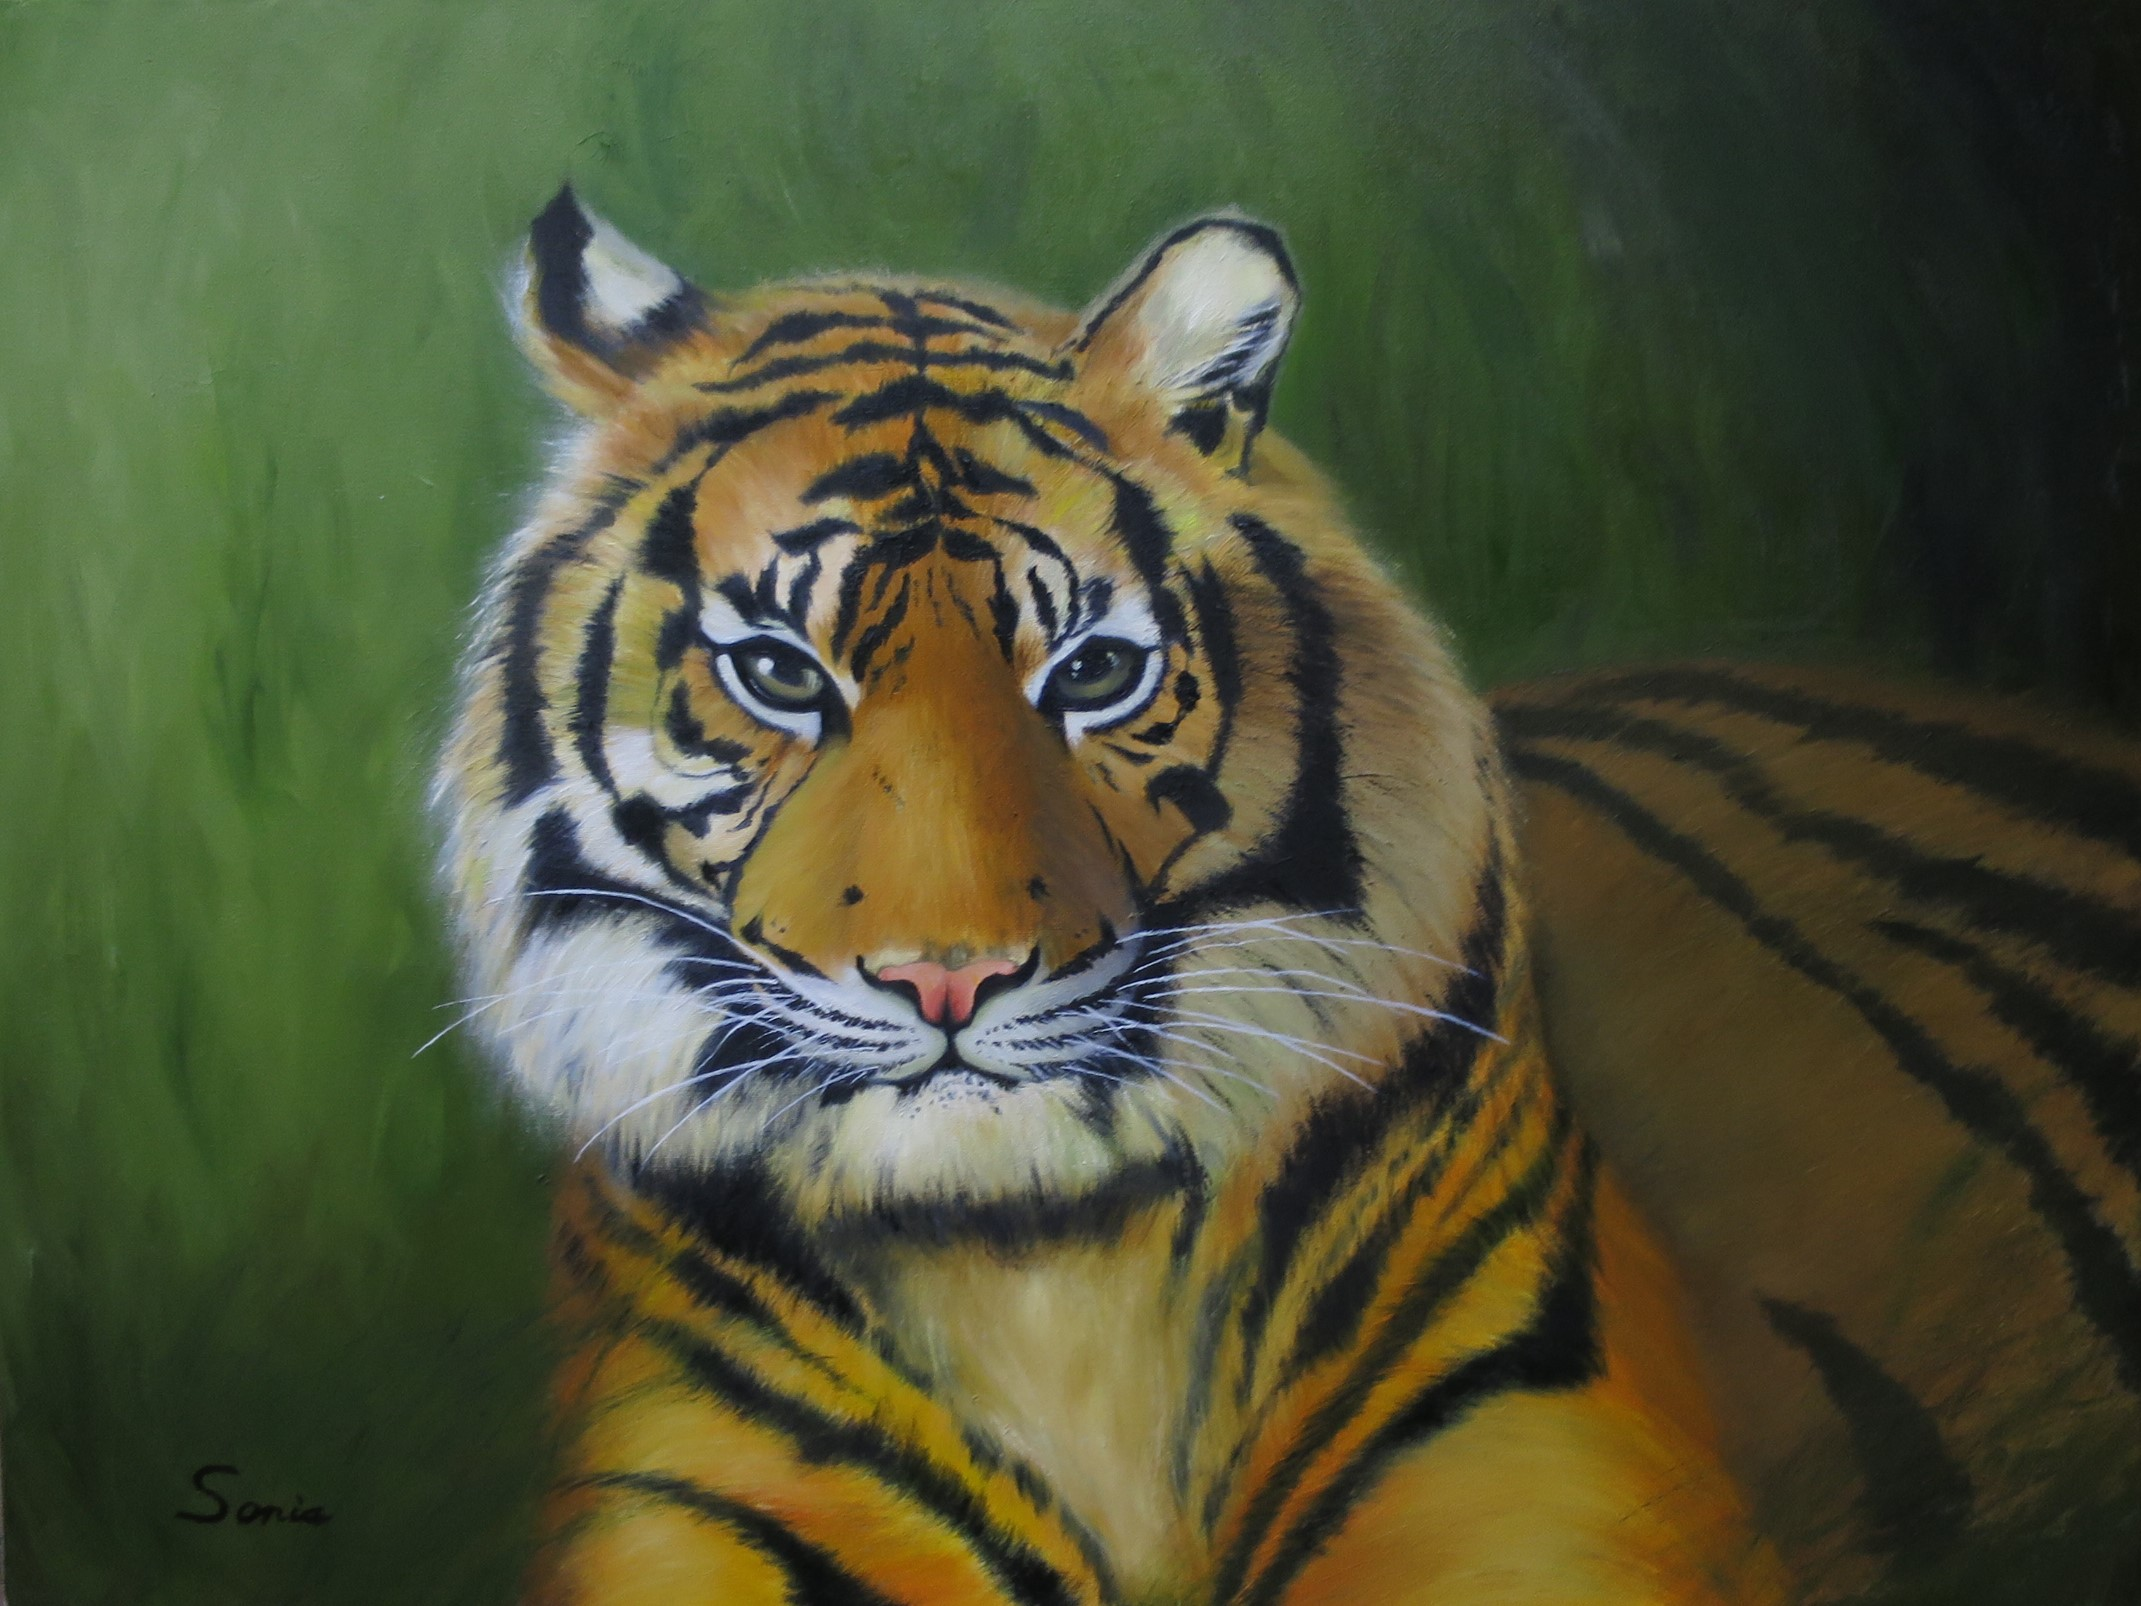 Crouching Tiger artwork by Sonia Lam - art listed for sale on Artplode